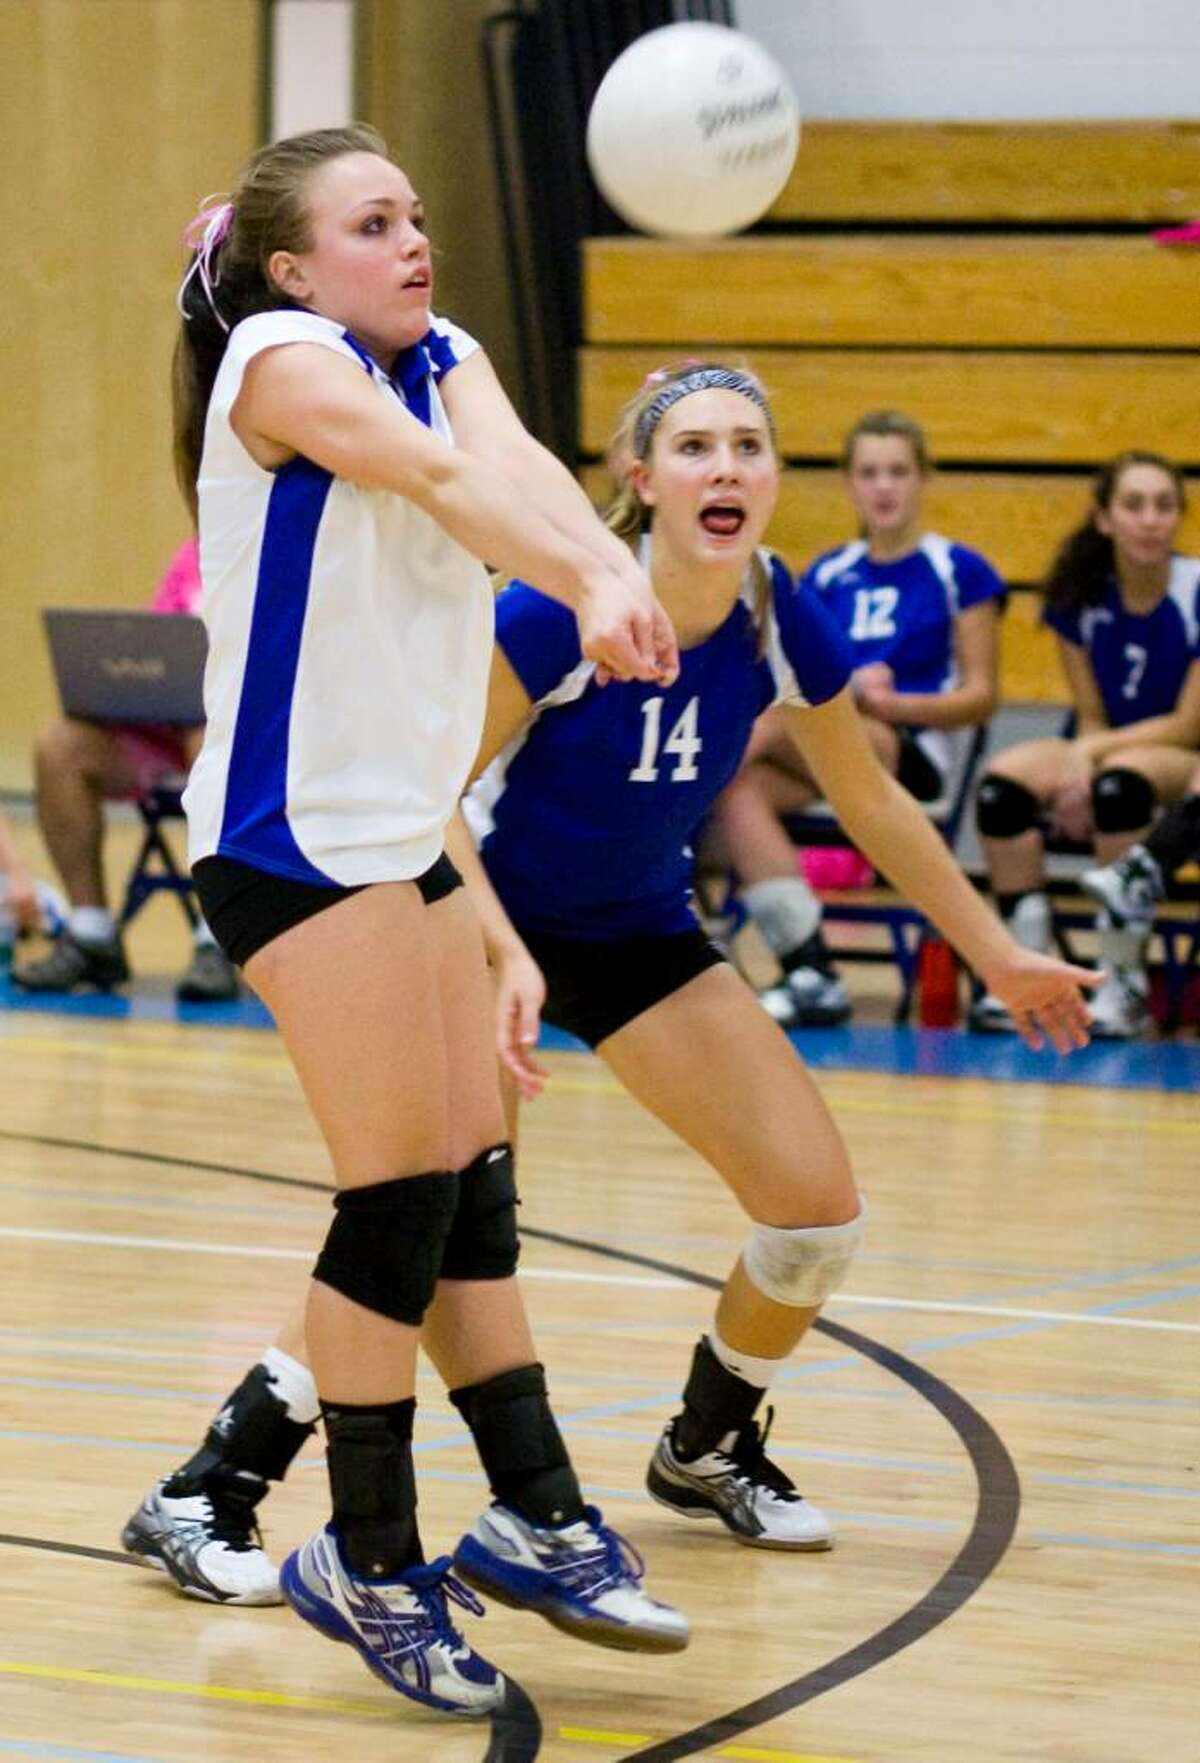 Darien High School's #5 Sarah Suckow, left, plays the ball as she's cheered on by teammate #14 Corinne Sommi, right, during a game against Wilton High School in girls volleyball in Darien.